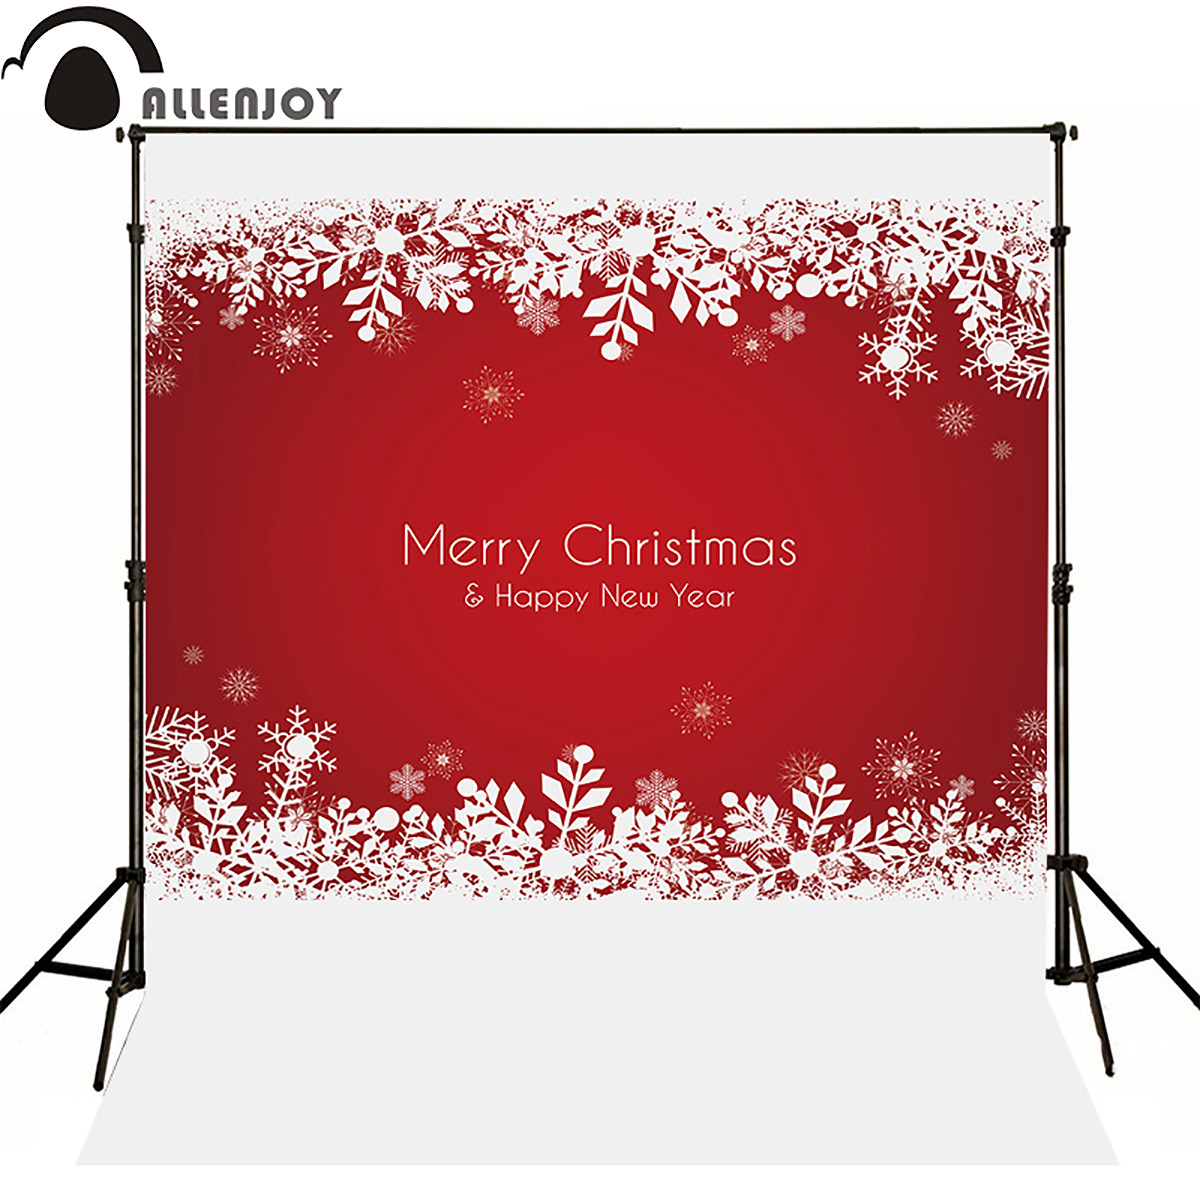 Allenjoy photography backdrops merry christmas new year winter red xmas snowflake newborn baby shower snow background photocall